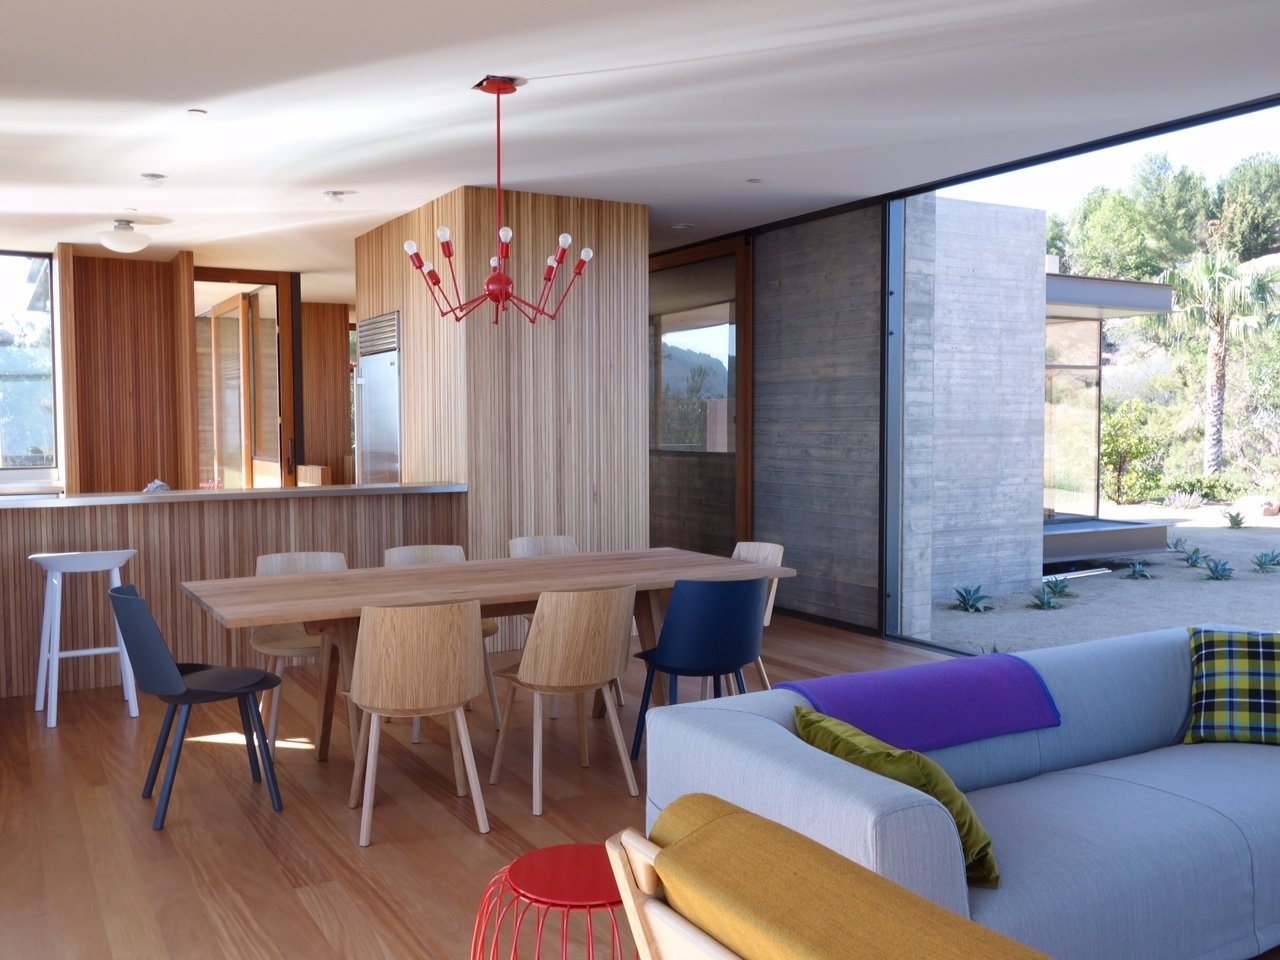 Tagged: Dining Room, Medium Hardwood Floor, and Accent Lighting. Take Your Next Vacation in a Midcentury Home in the Santa Monica Mountains - Photo 3 of 13